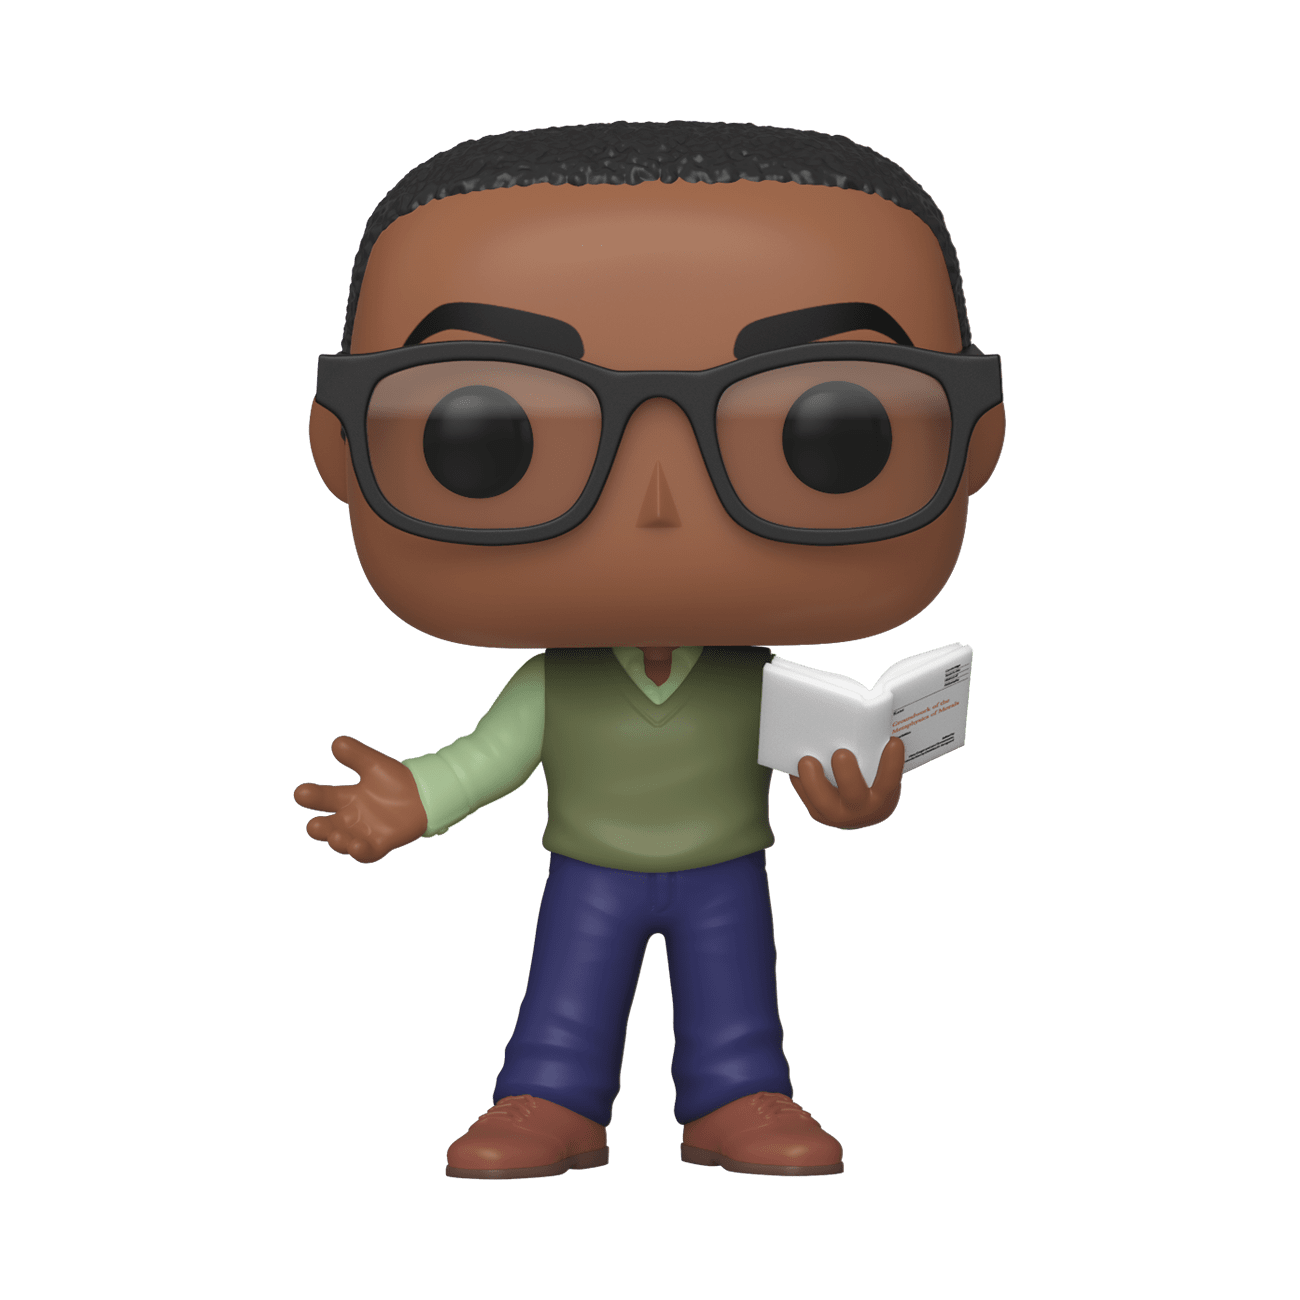 Funko The Good Place - Chidi Anagonye Pop! Vinyl Figure